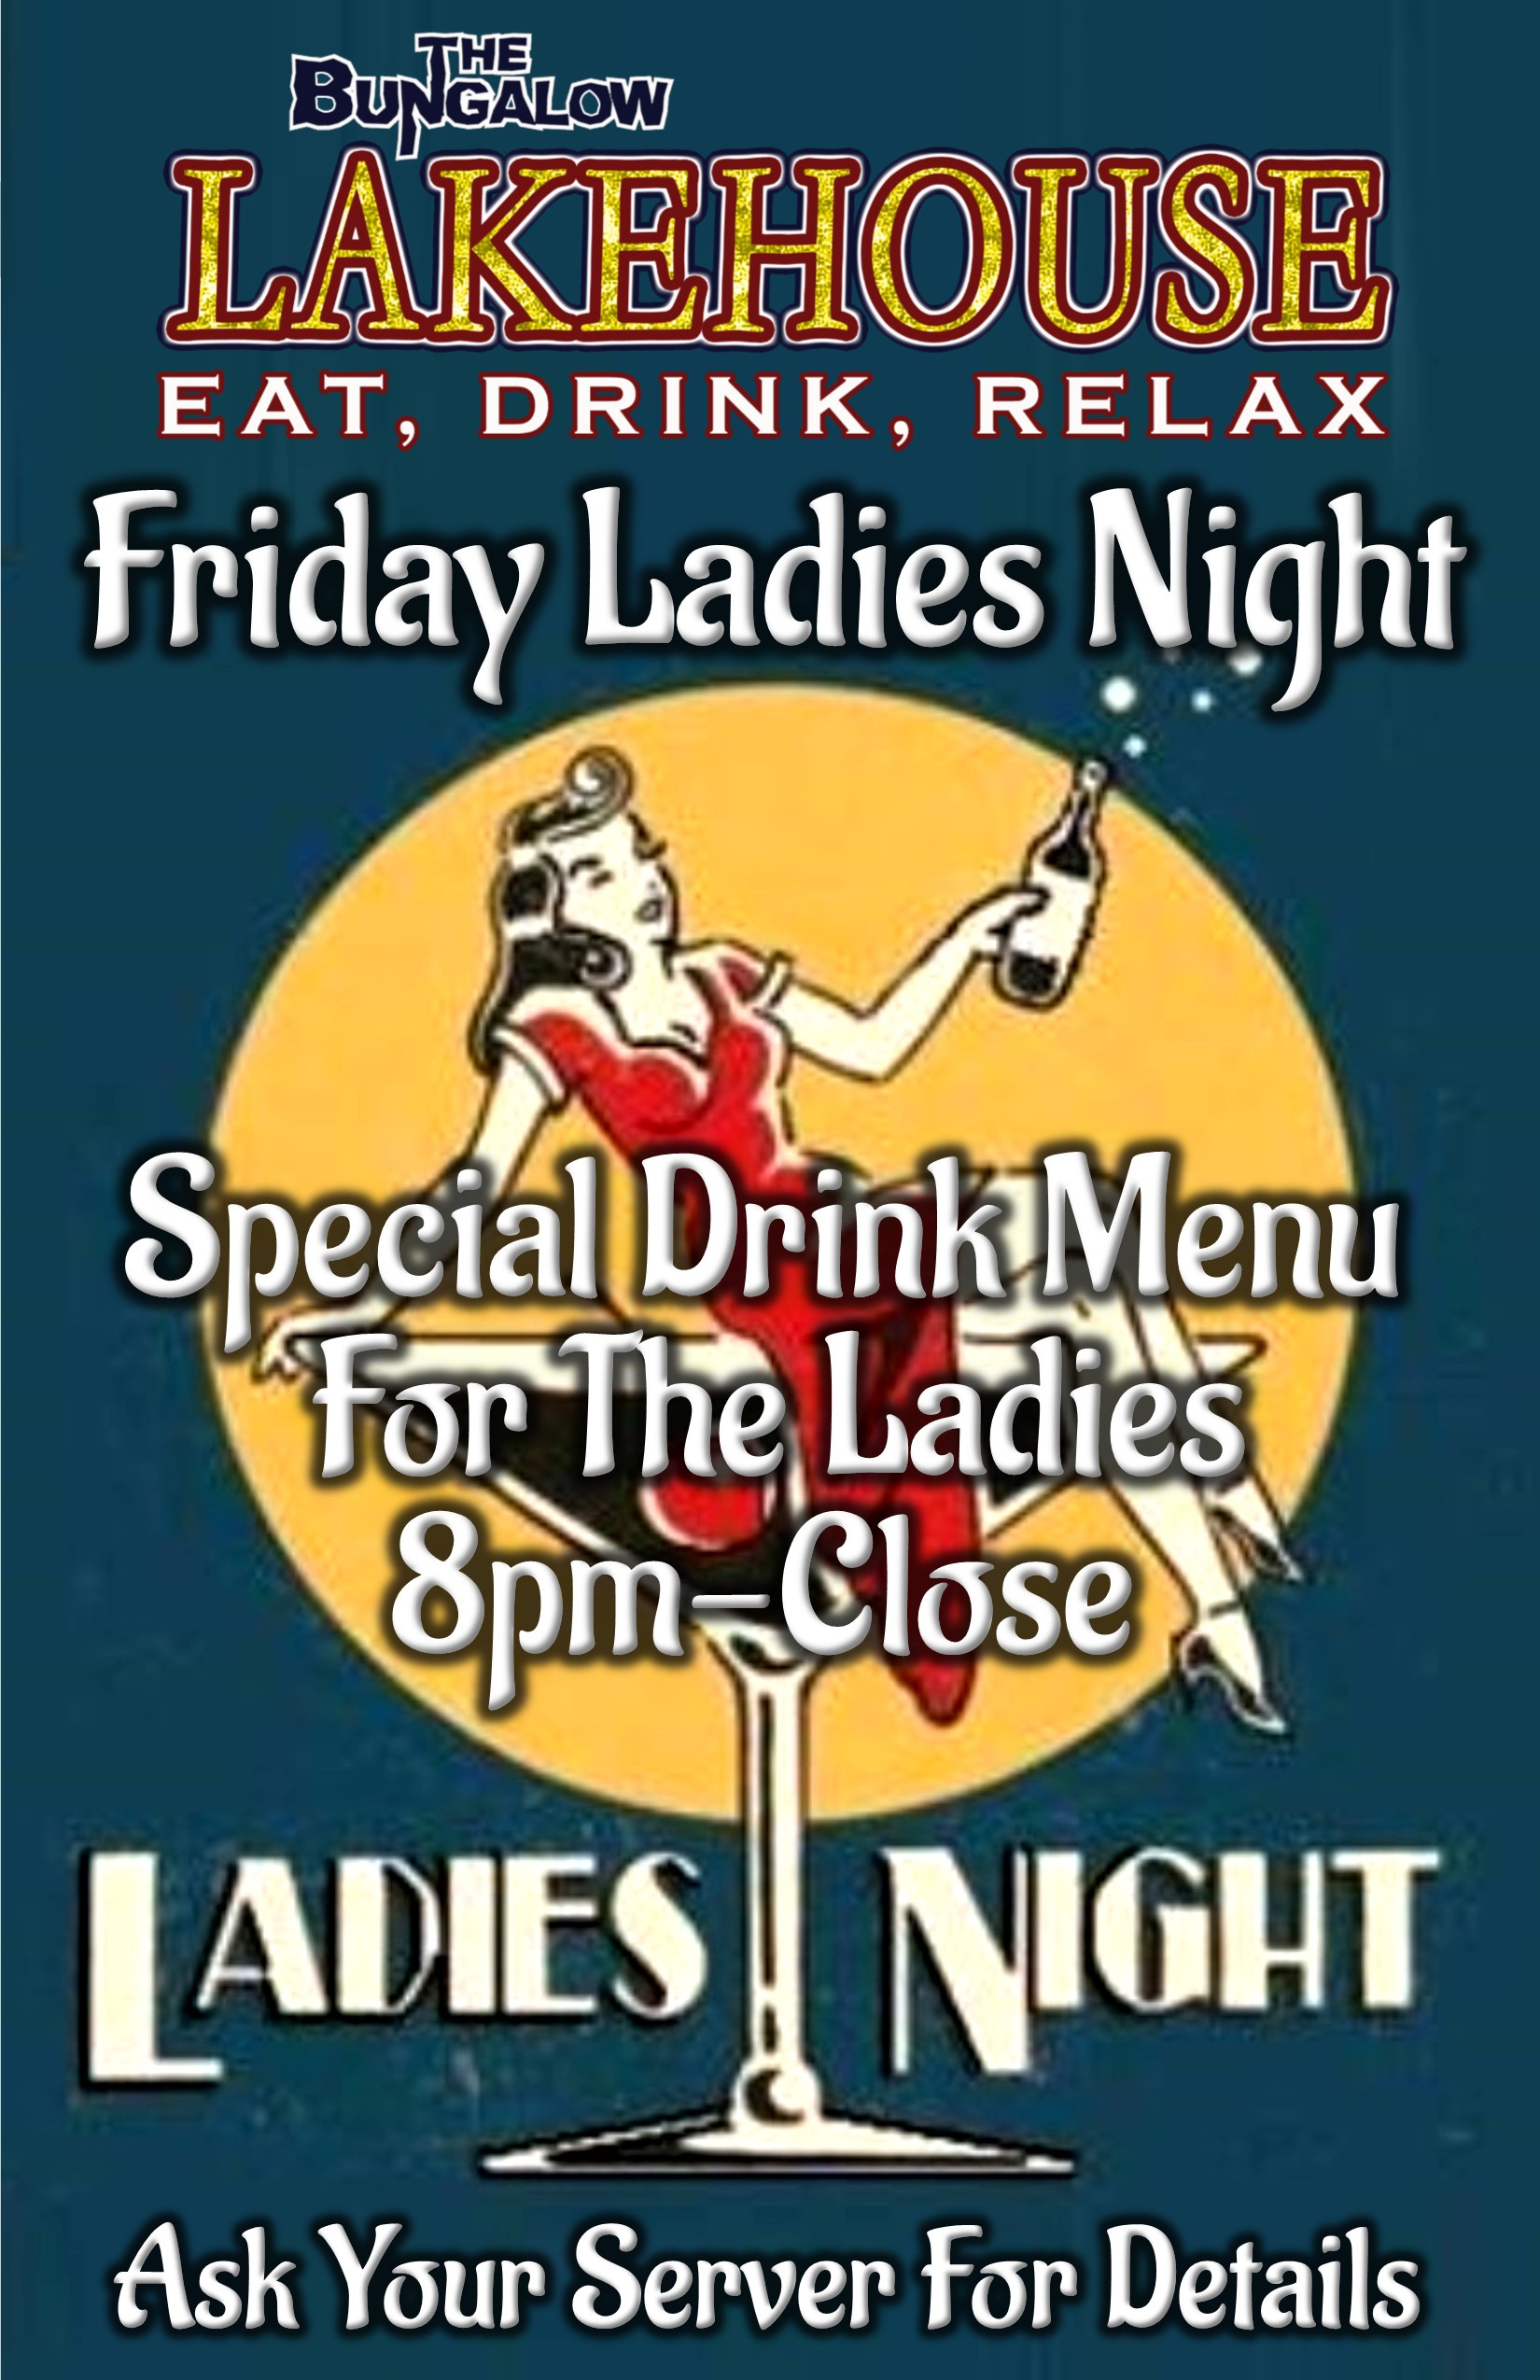 Ladies Night LH 11x17